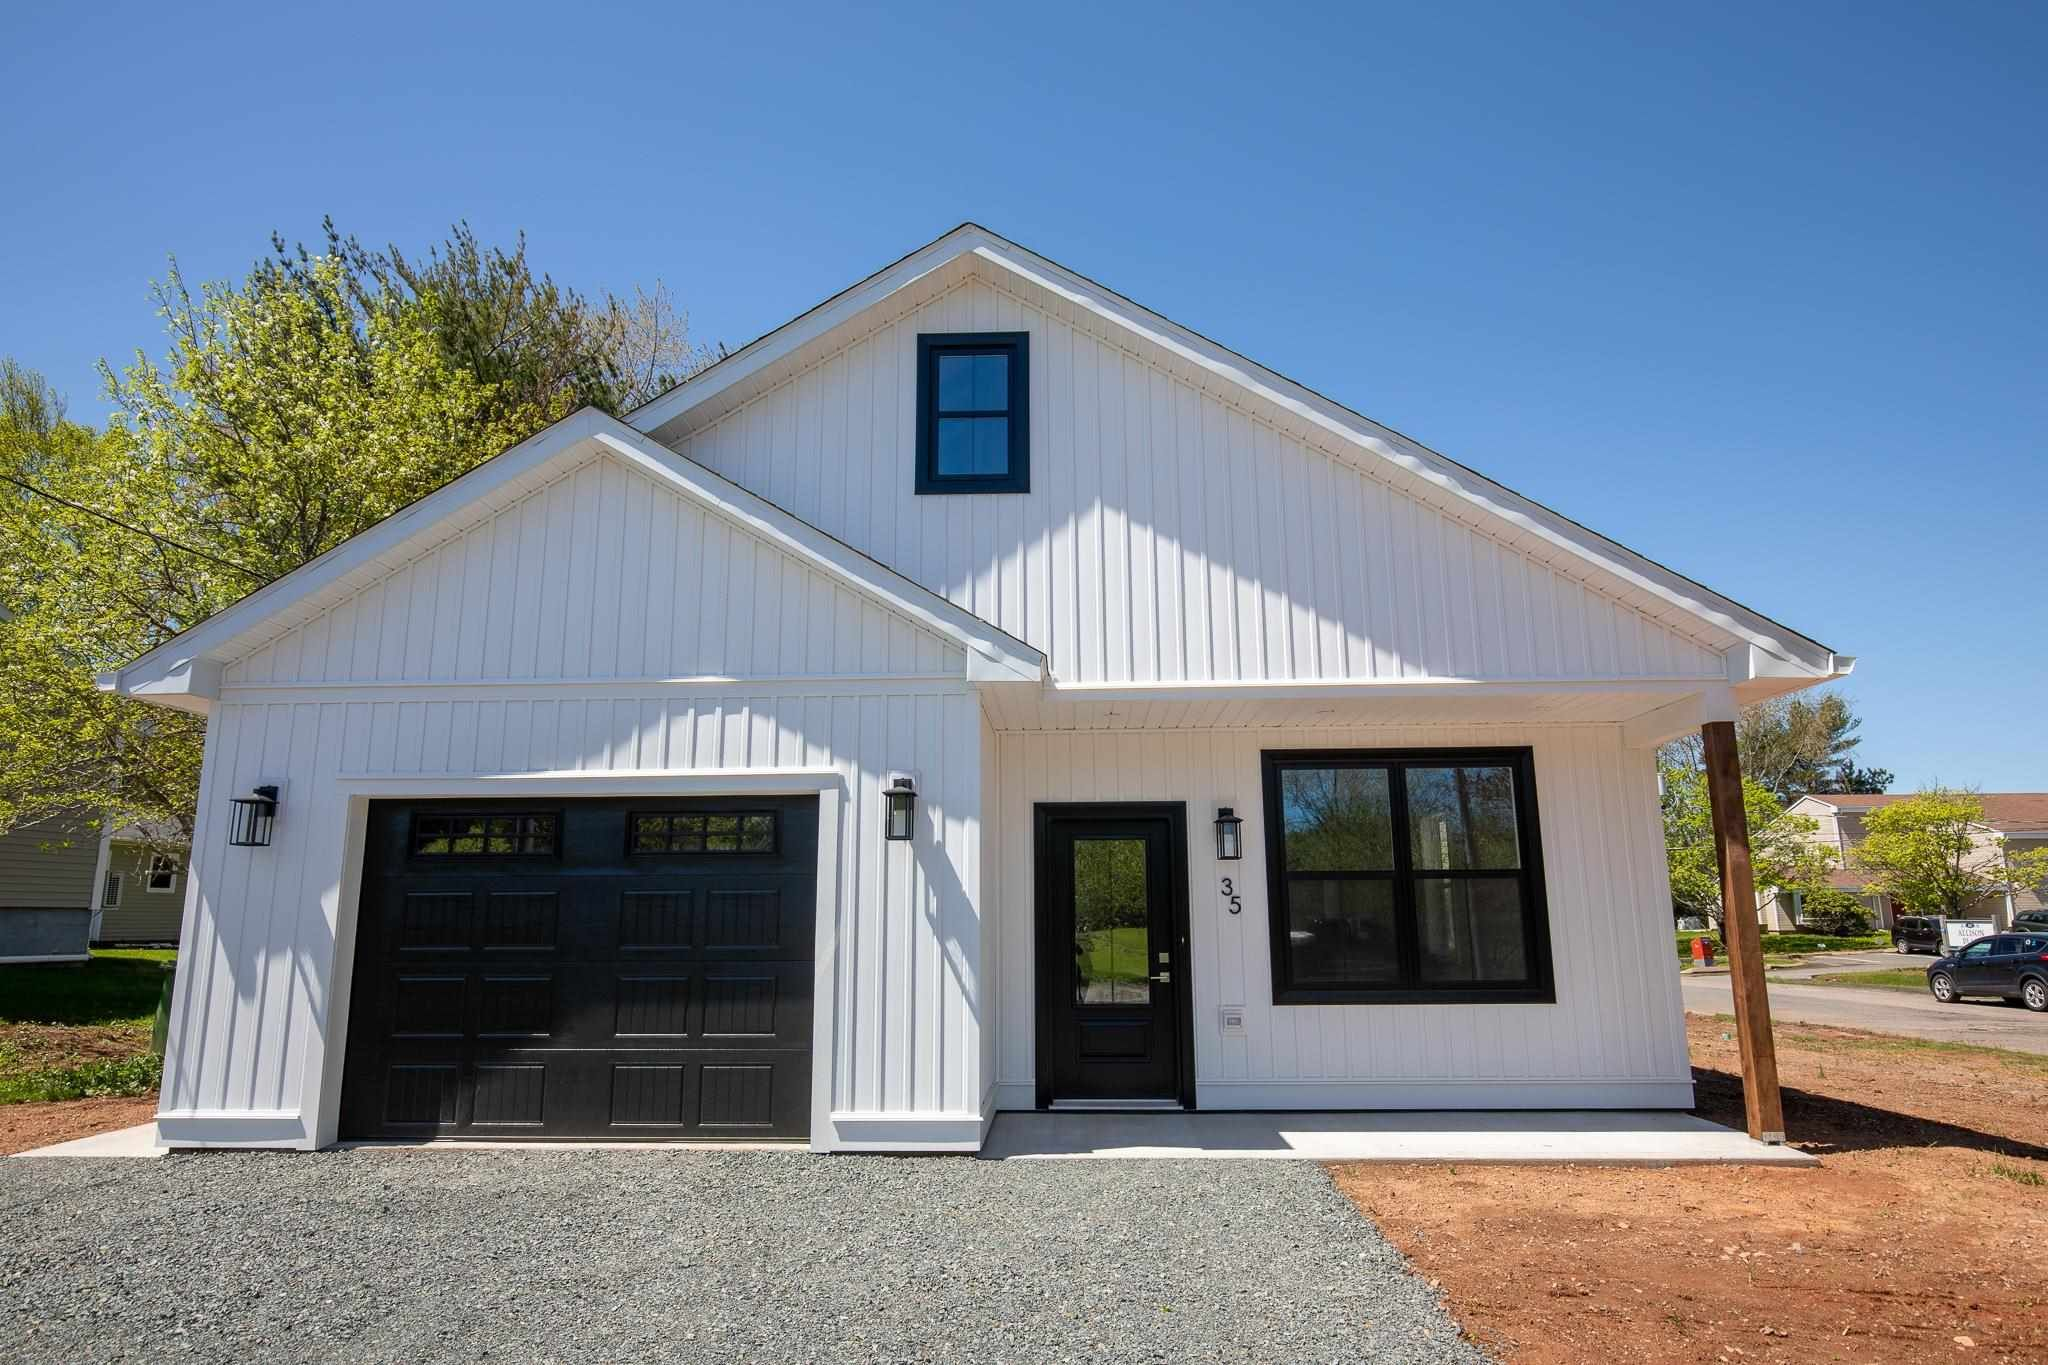 Main Photo: 35 Allison Avenue in Bible Hill: 104-Truro/Bible Hill/Brookfield Residential for sale (Northern Region)  : MLS®# 202113260